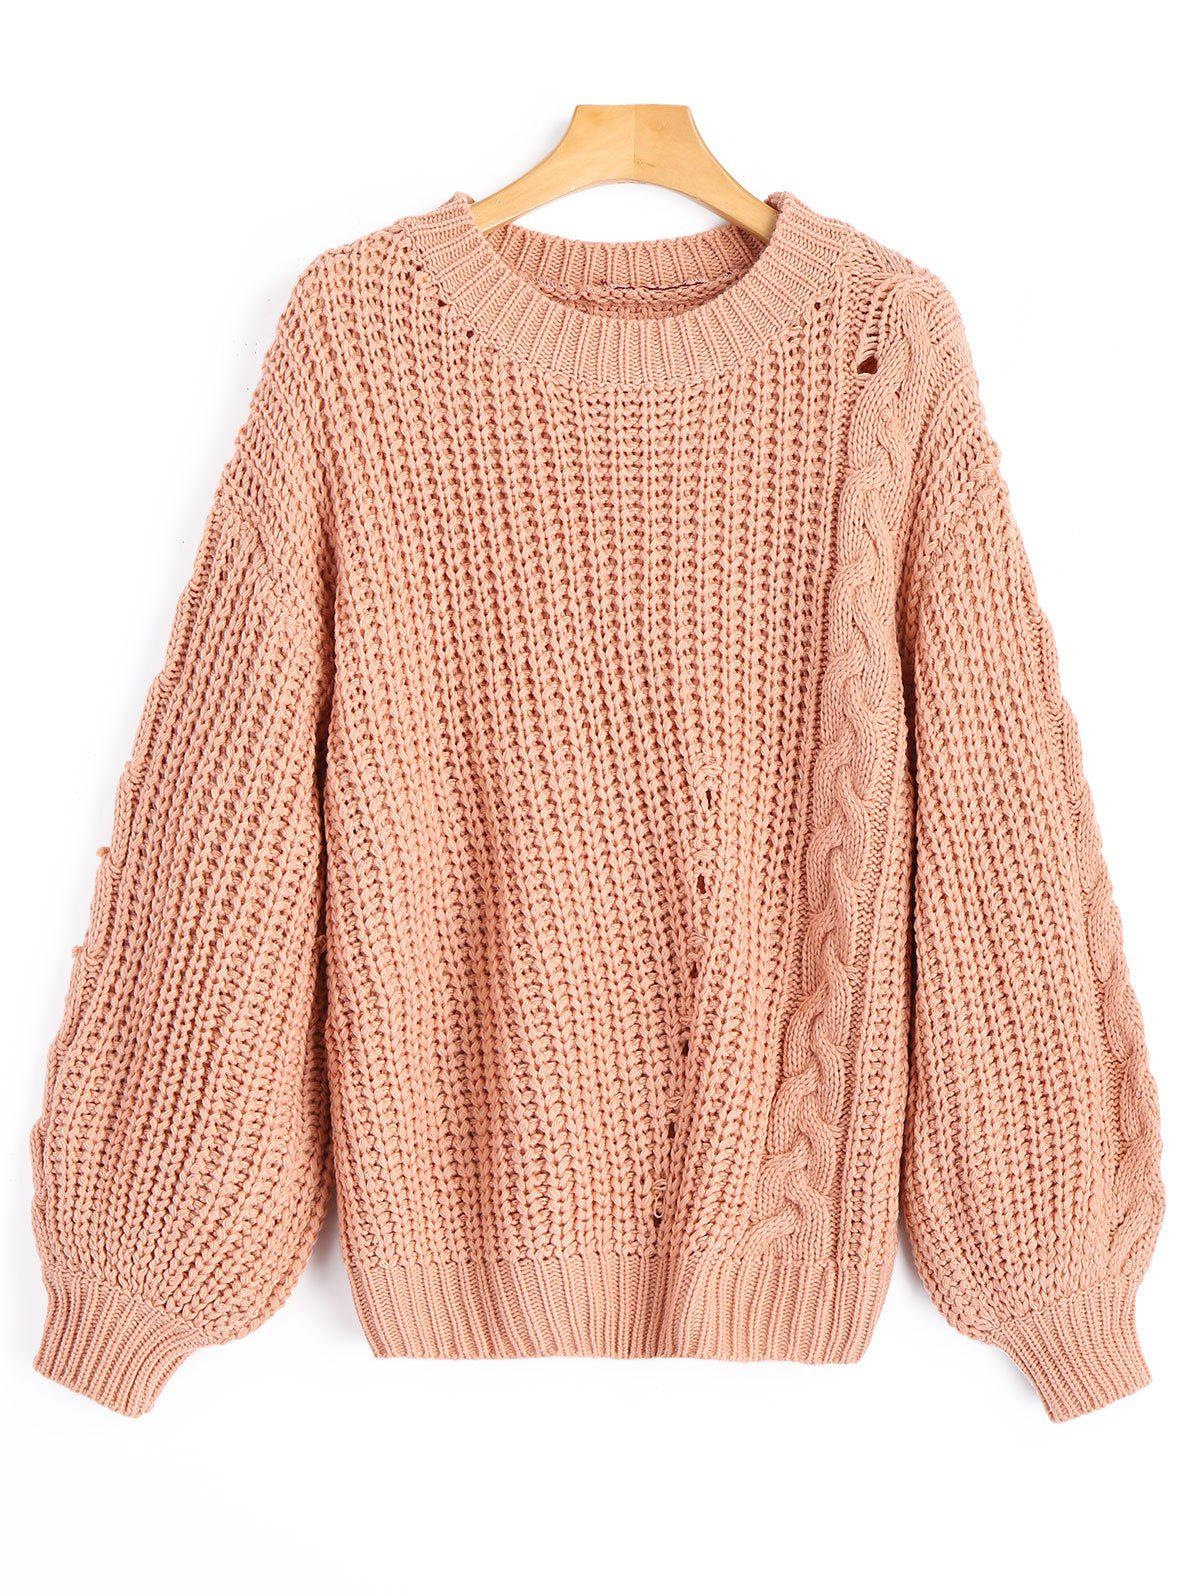 Chunky Cable Knit Sweater - Camée ONE SIZE